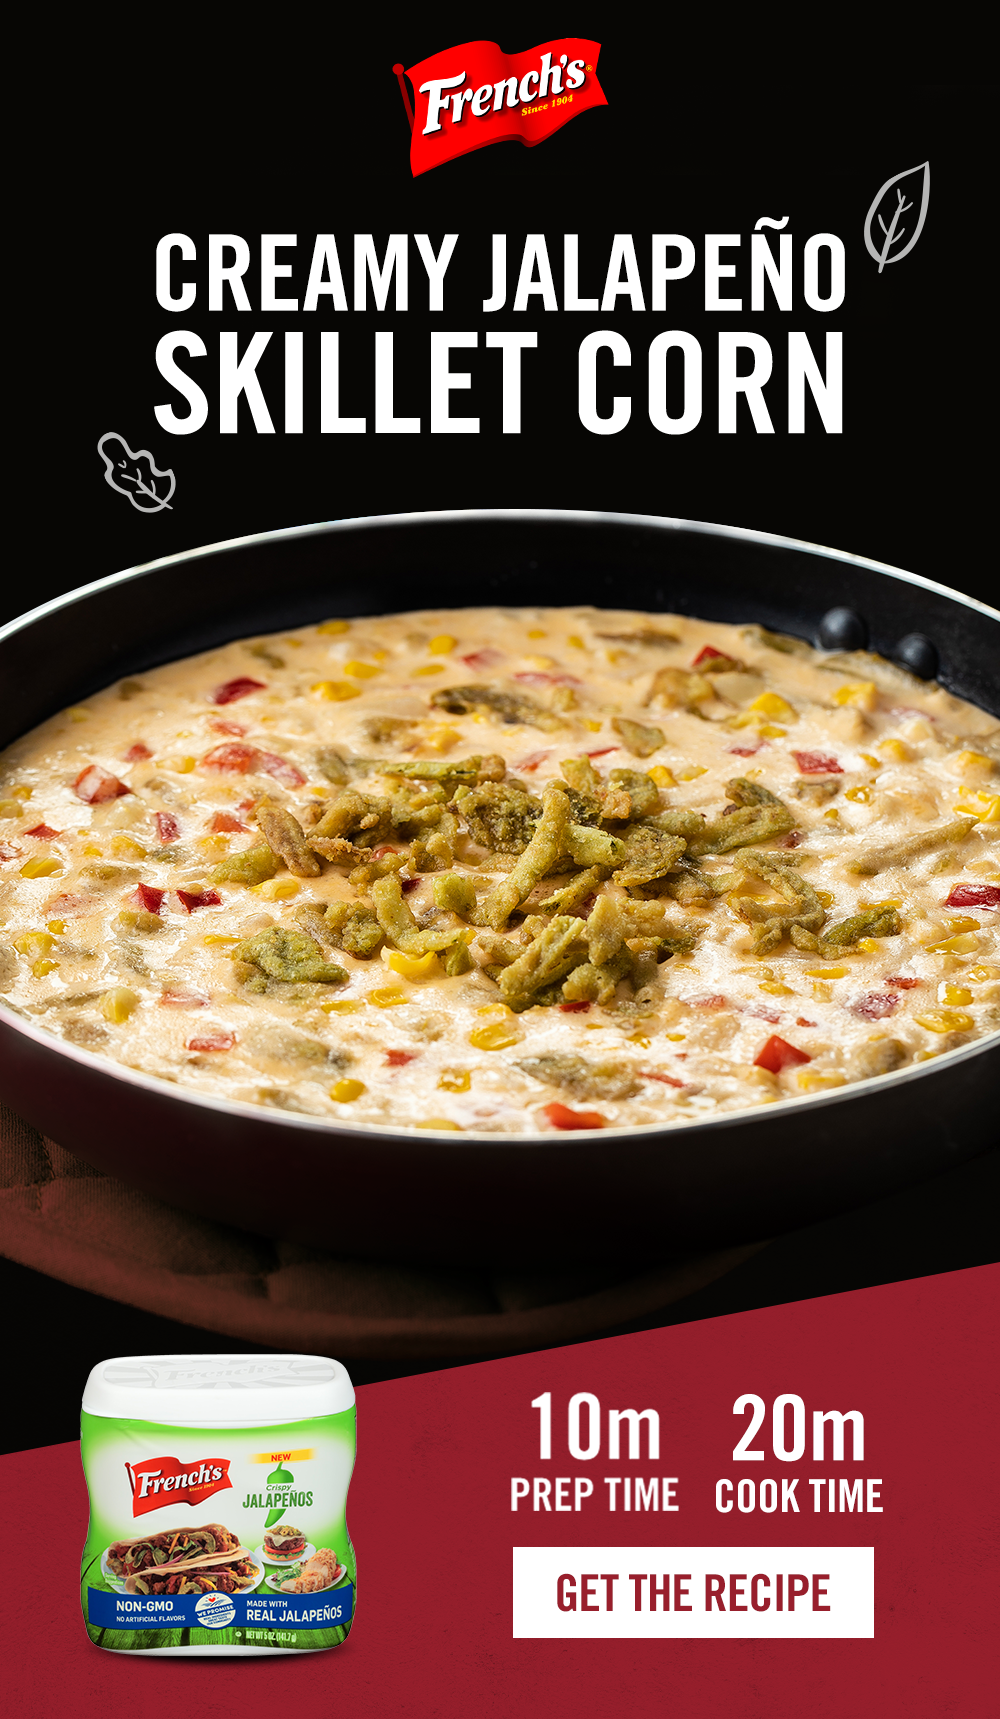 Classic Table Side Dishes Punch Up The Classic Skillet Corn Side Dish With The Crunch And